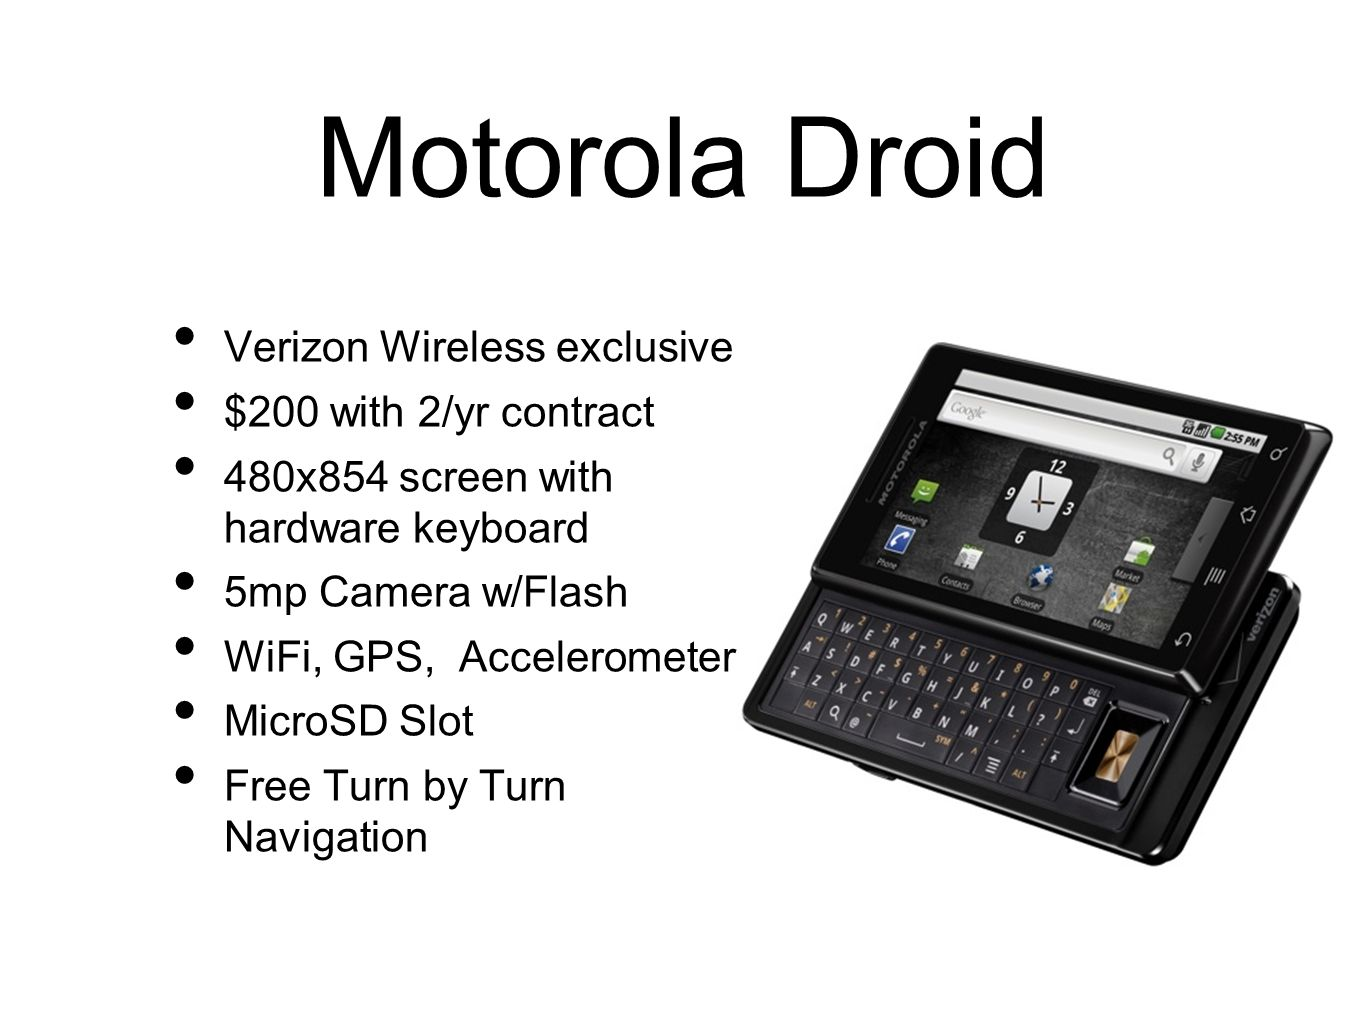 Motorola Droid Verizon Wireless exclusive $200 with 2/yr contract